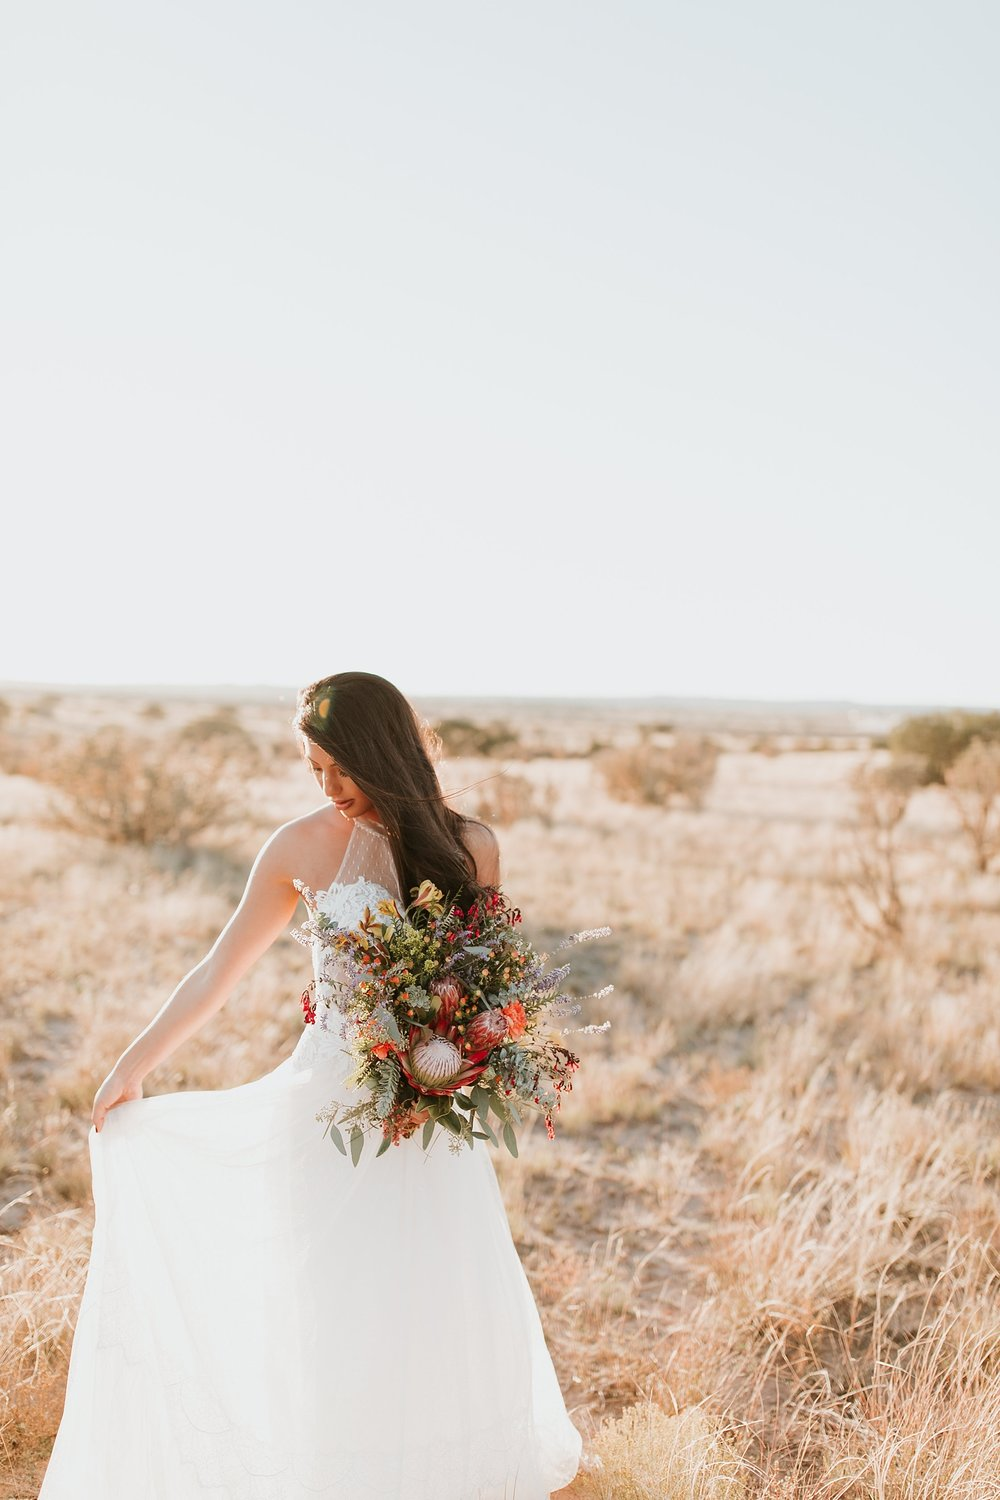 Alicia+lucia+photography+-+albuquerque+wedding+photographer+-+santa+fe+wedding+photography+-+new+mexico+wedding+photographer+-+new+mexico+bride+-+southwest+bridal+session+-+desert+bridal+session+-+santa+fe+bride+-+albuquerque+bride_0024.jpg